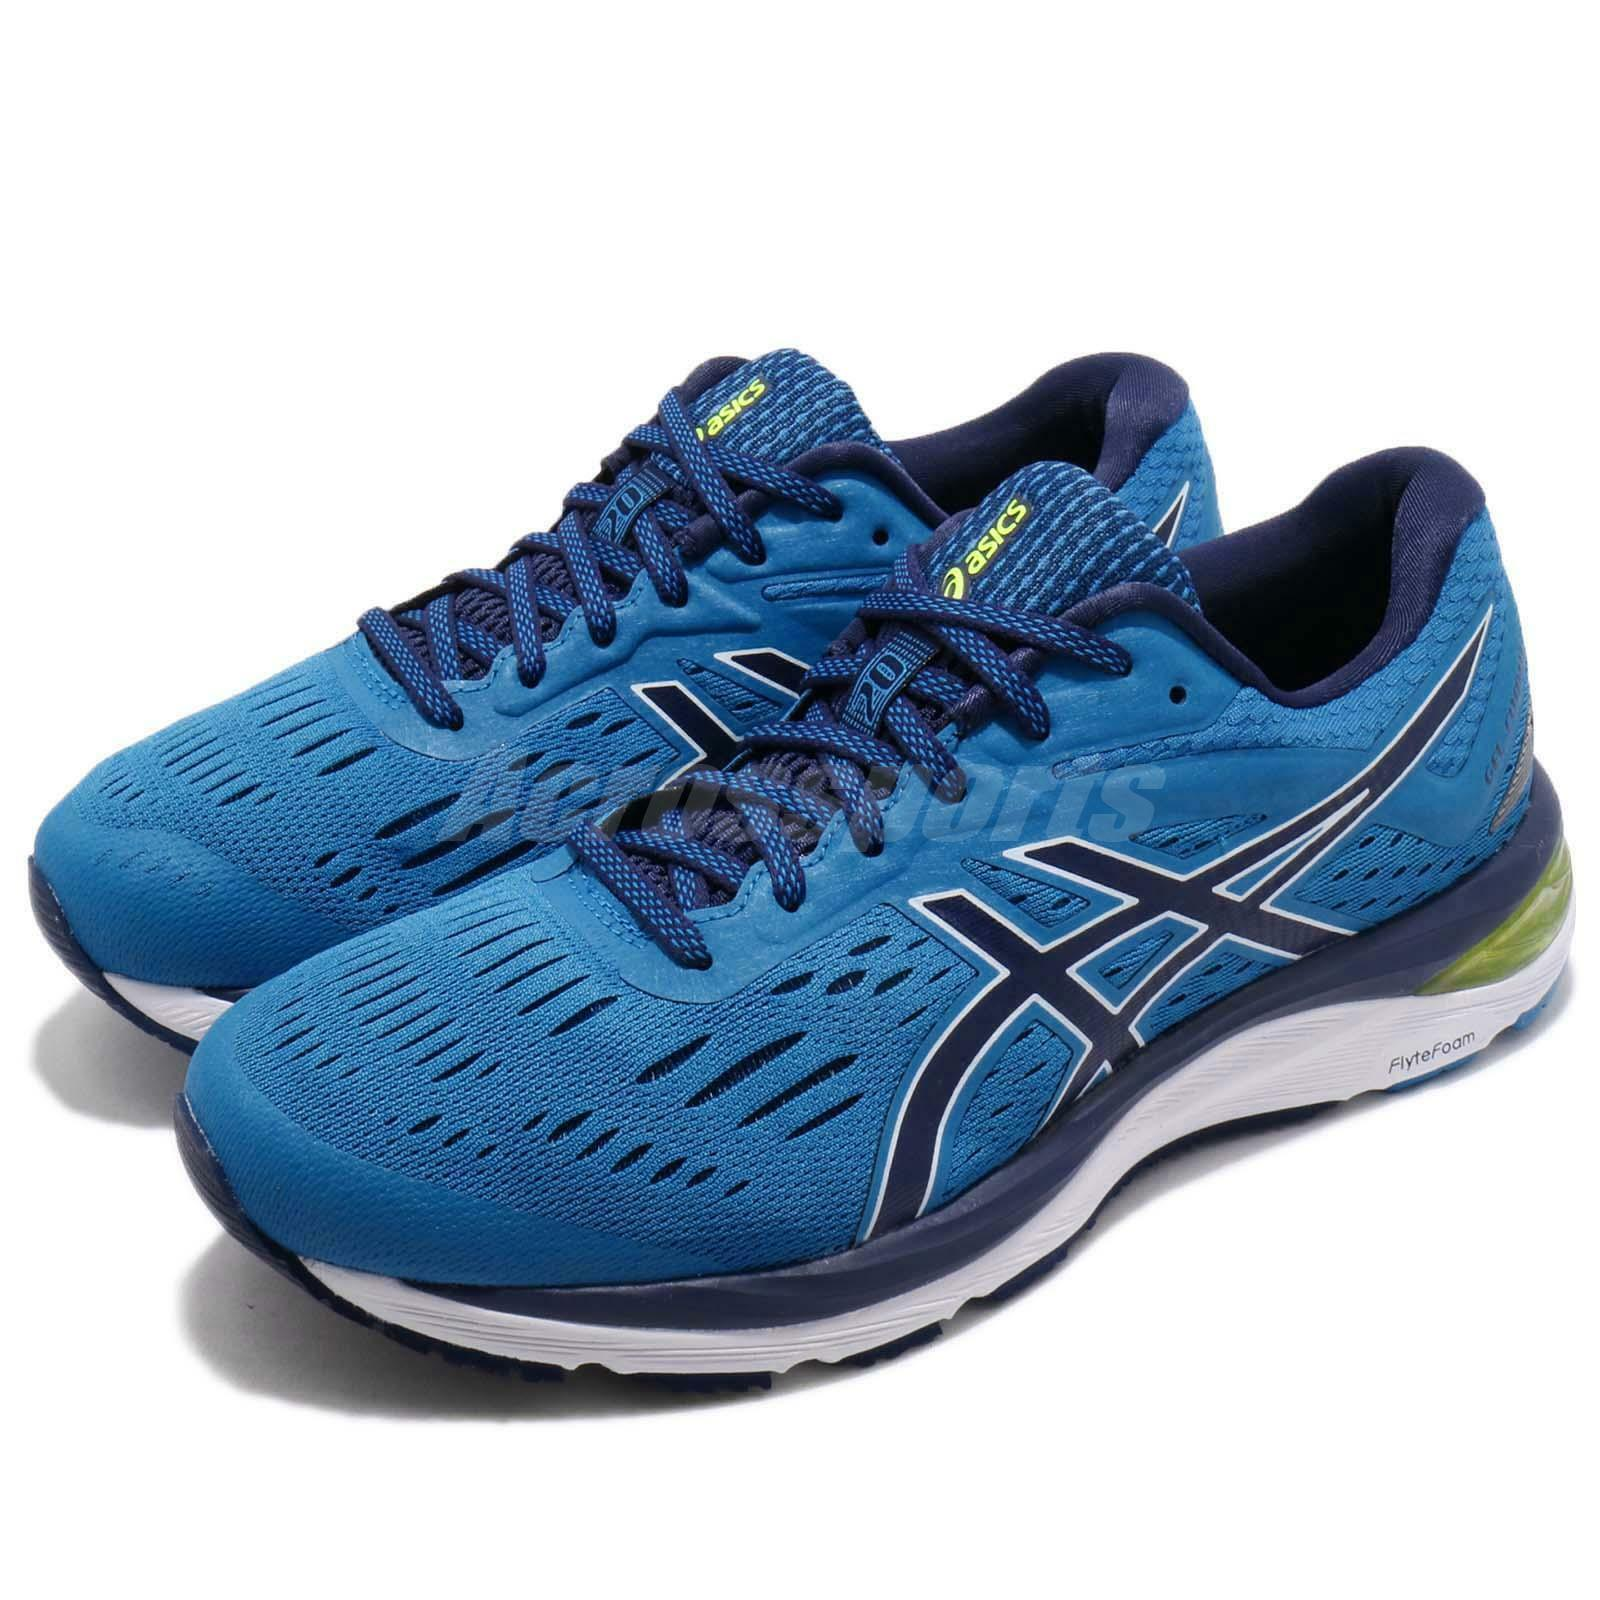 Asics Gel-Cumulus 20 blueee Peacoat White Men Running shoes  Sneakers 1011A008-400  first time reply